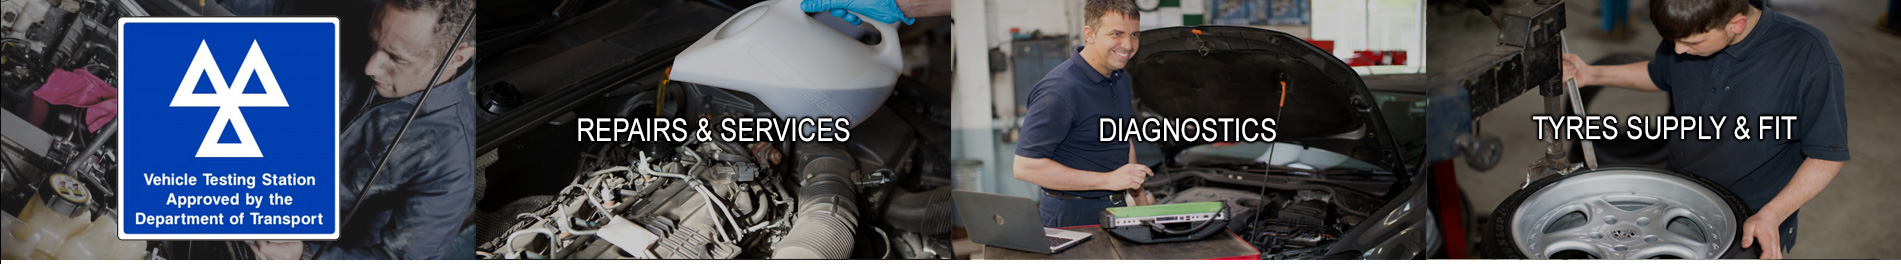 Canal Garage Boroughbridge | Services, Car Repairs